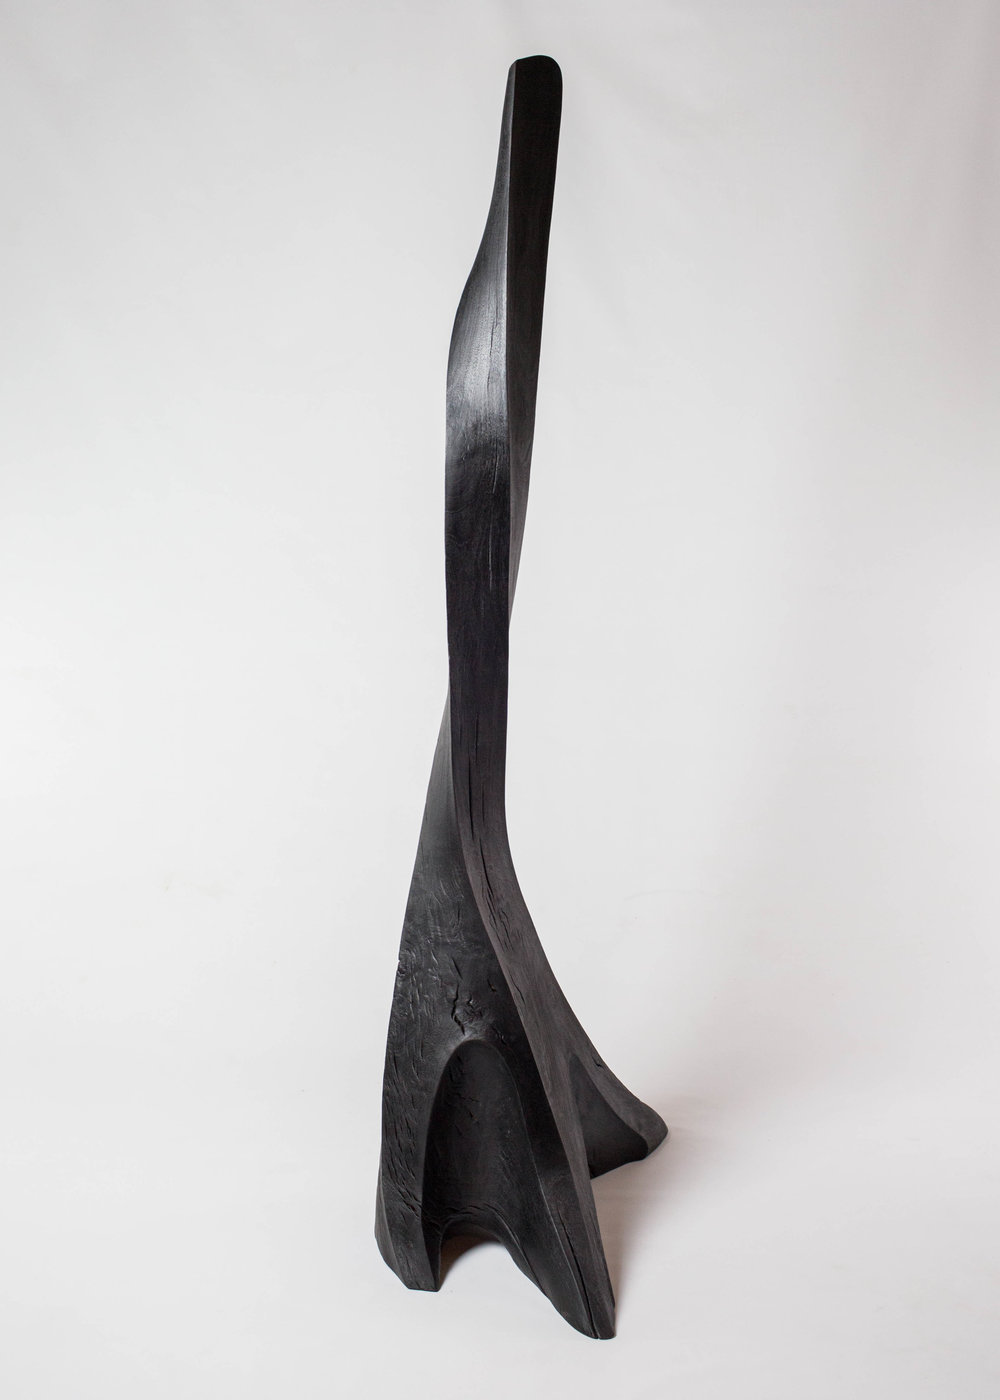 ben-riddering-twisted-wood-sculpture